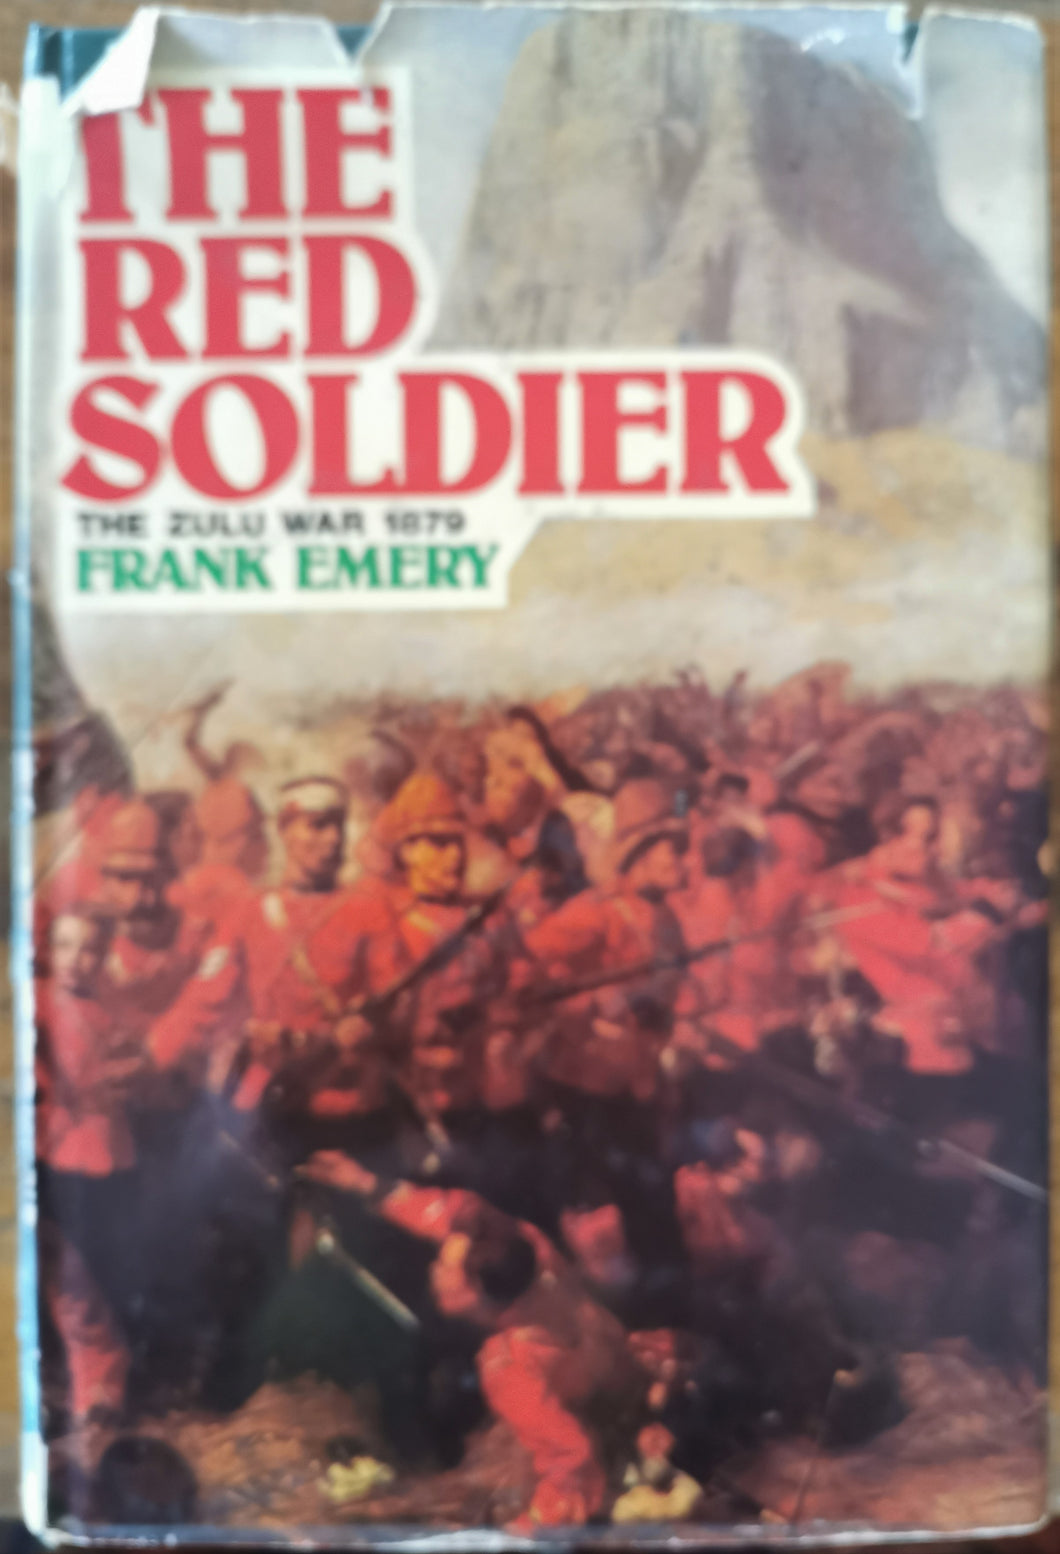 The Red Soldier: The Zulu War 1879 - Frank Emery